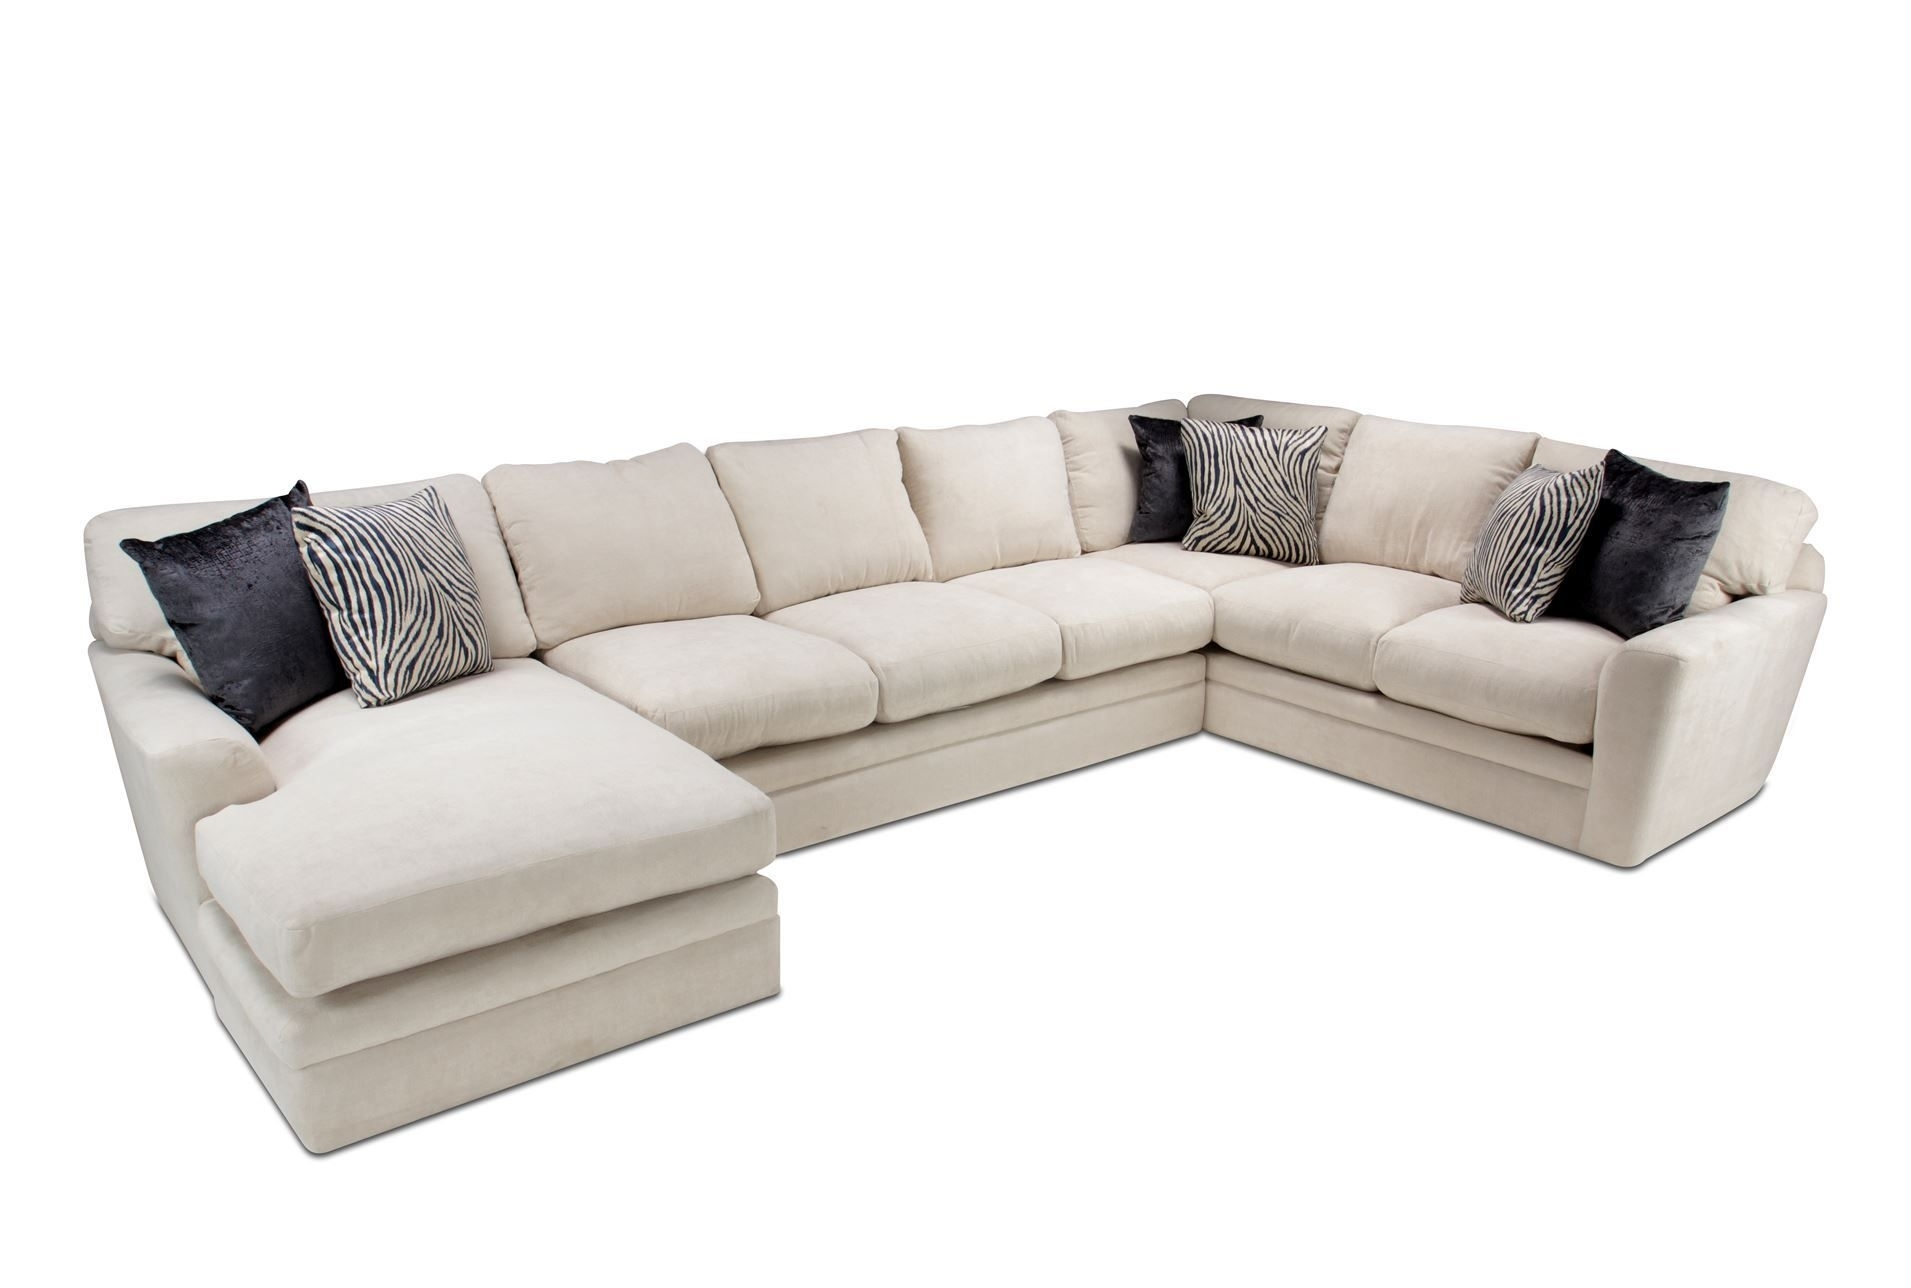 Glamour 3 Piece Sectional (Image 14 of 25)